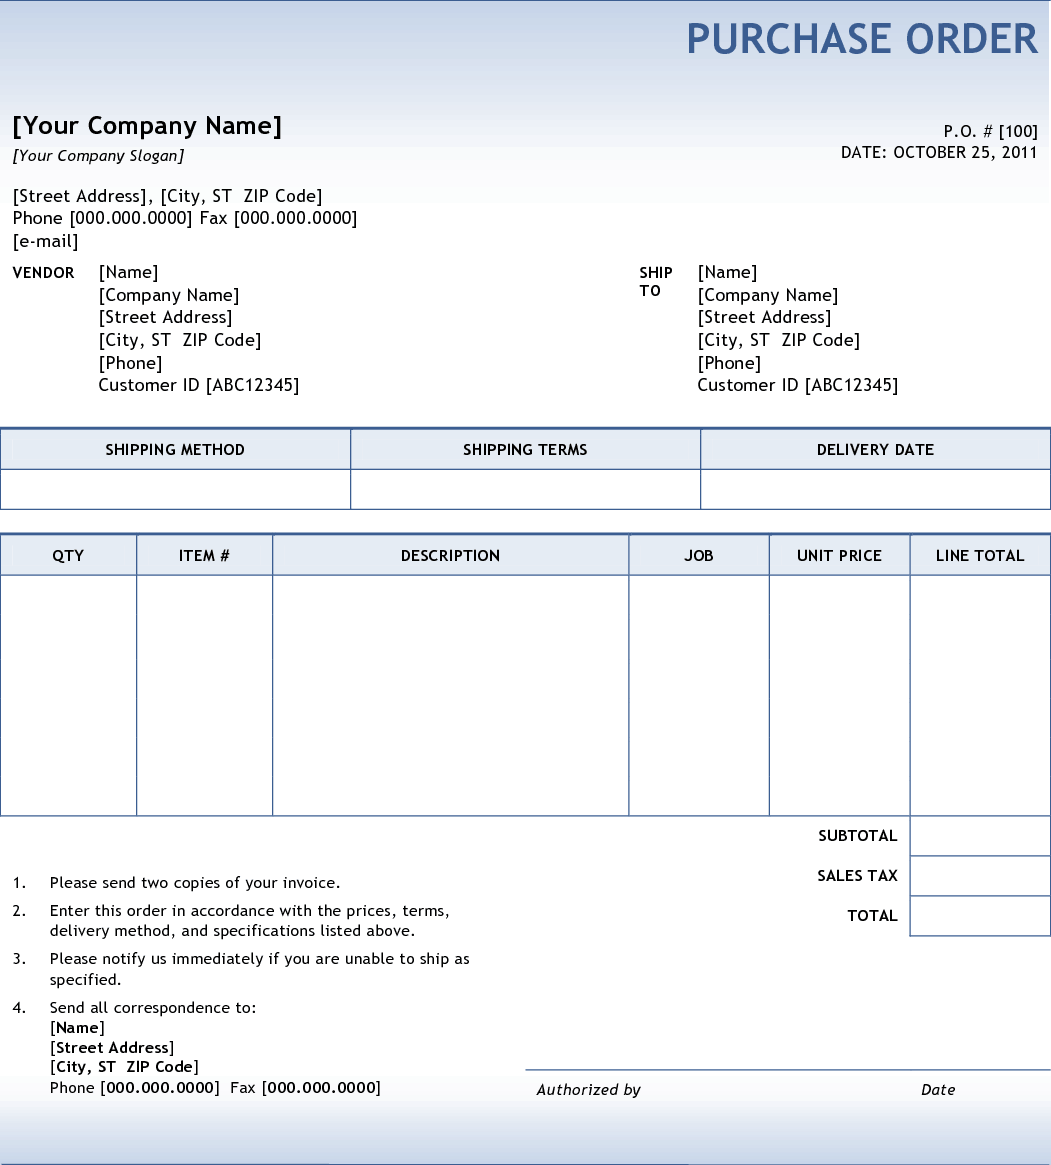 Purchase Order Template 22  Purchase Order Formats